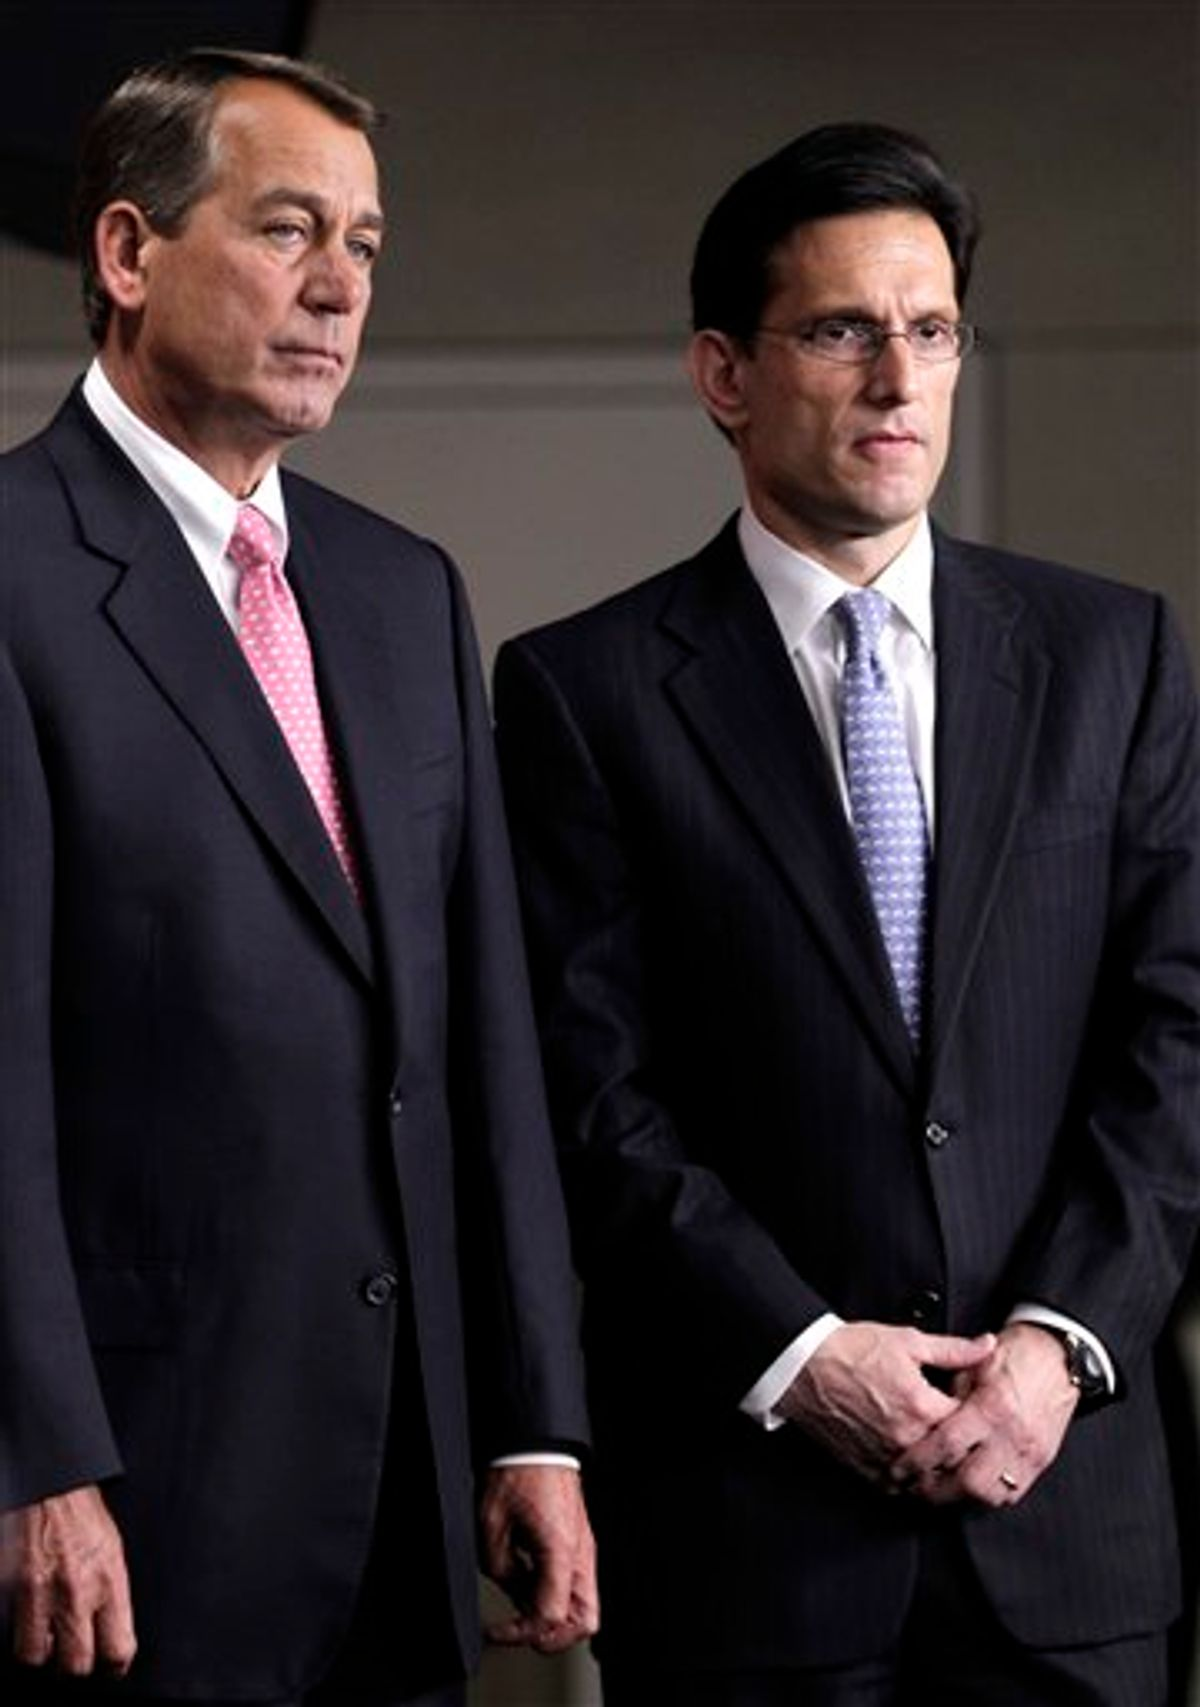 FILE -- In this file photo of Thursday, June 16, 2011, House Majority Leader Eric Cantor of Virginia, right, stands with House Speaker John Boehner of Ohio on Capitol Hill in Washington. Cantor, who has been participating in bipartisan budget talks headed by Vice President Joe Biden, pulled out today citing an impasse over taxes that required intervention by President Barack Obama and House Speaker John Boehner. (AP Photo/J. Scott Applewhite, File)    (AP)